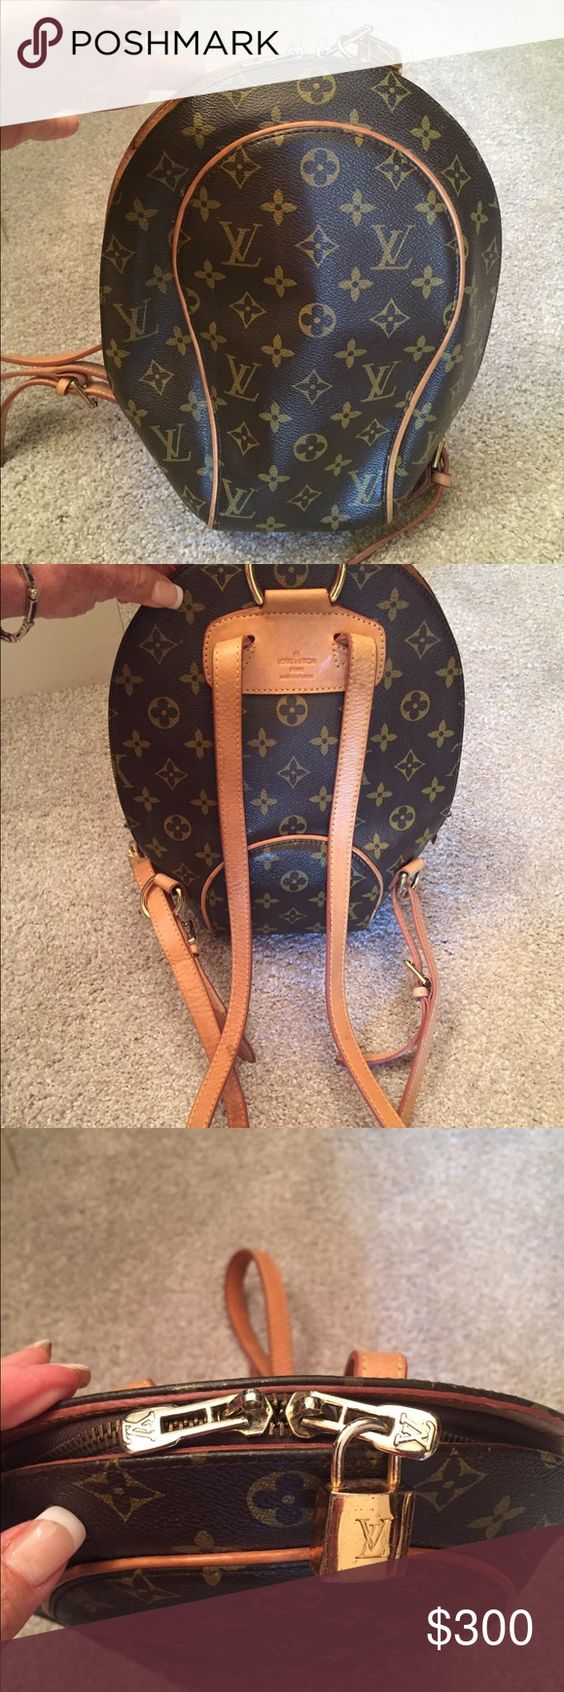 Louis Vuitton Elipse Backpack Bag Purse Louis Vuitton backpack previously used and loved as I used when my boys were little.  Genuine leather straps which hv patinaed nicely, a few normal wear marks on straps no big deal will mk an additional listing for close ups, NO serial number,  some inside stains as this is 7 years old, has lock attached but lost the key, priced accordingly...not claiming authentic...better price through 🅿️🅿️ Louis Vuitton Bags Backpacks